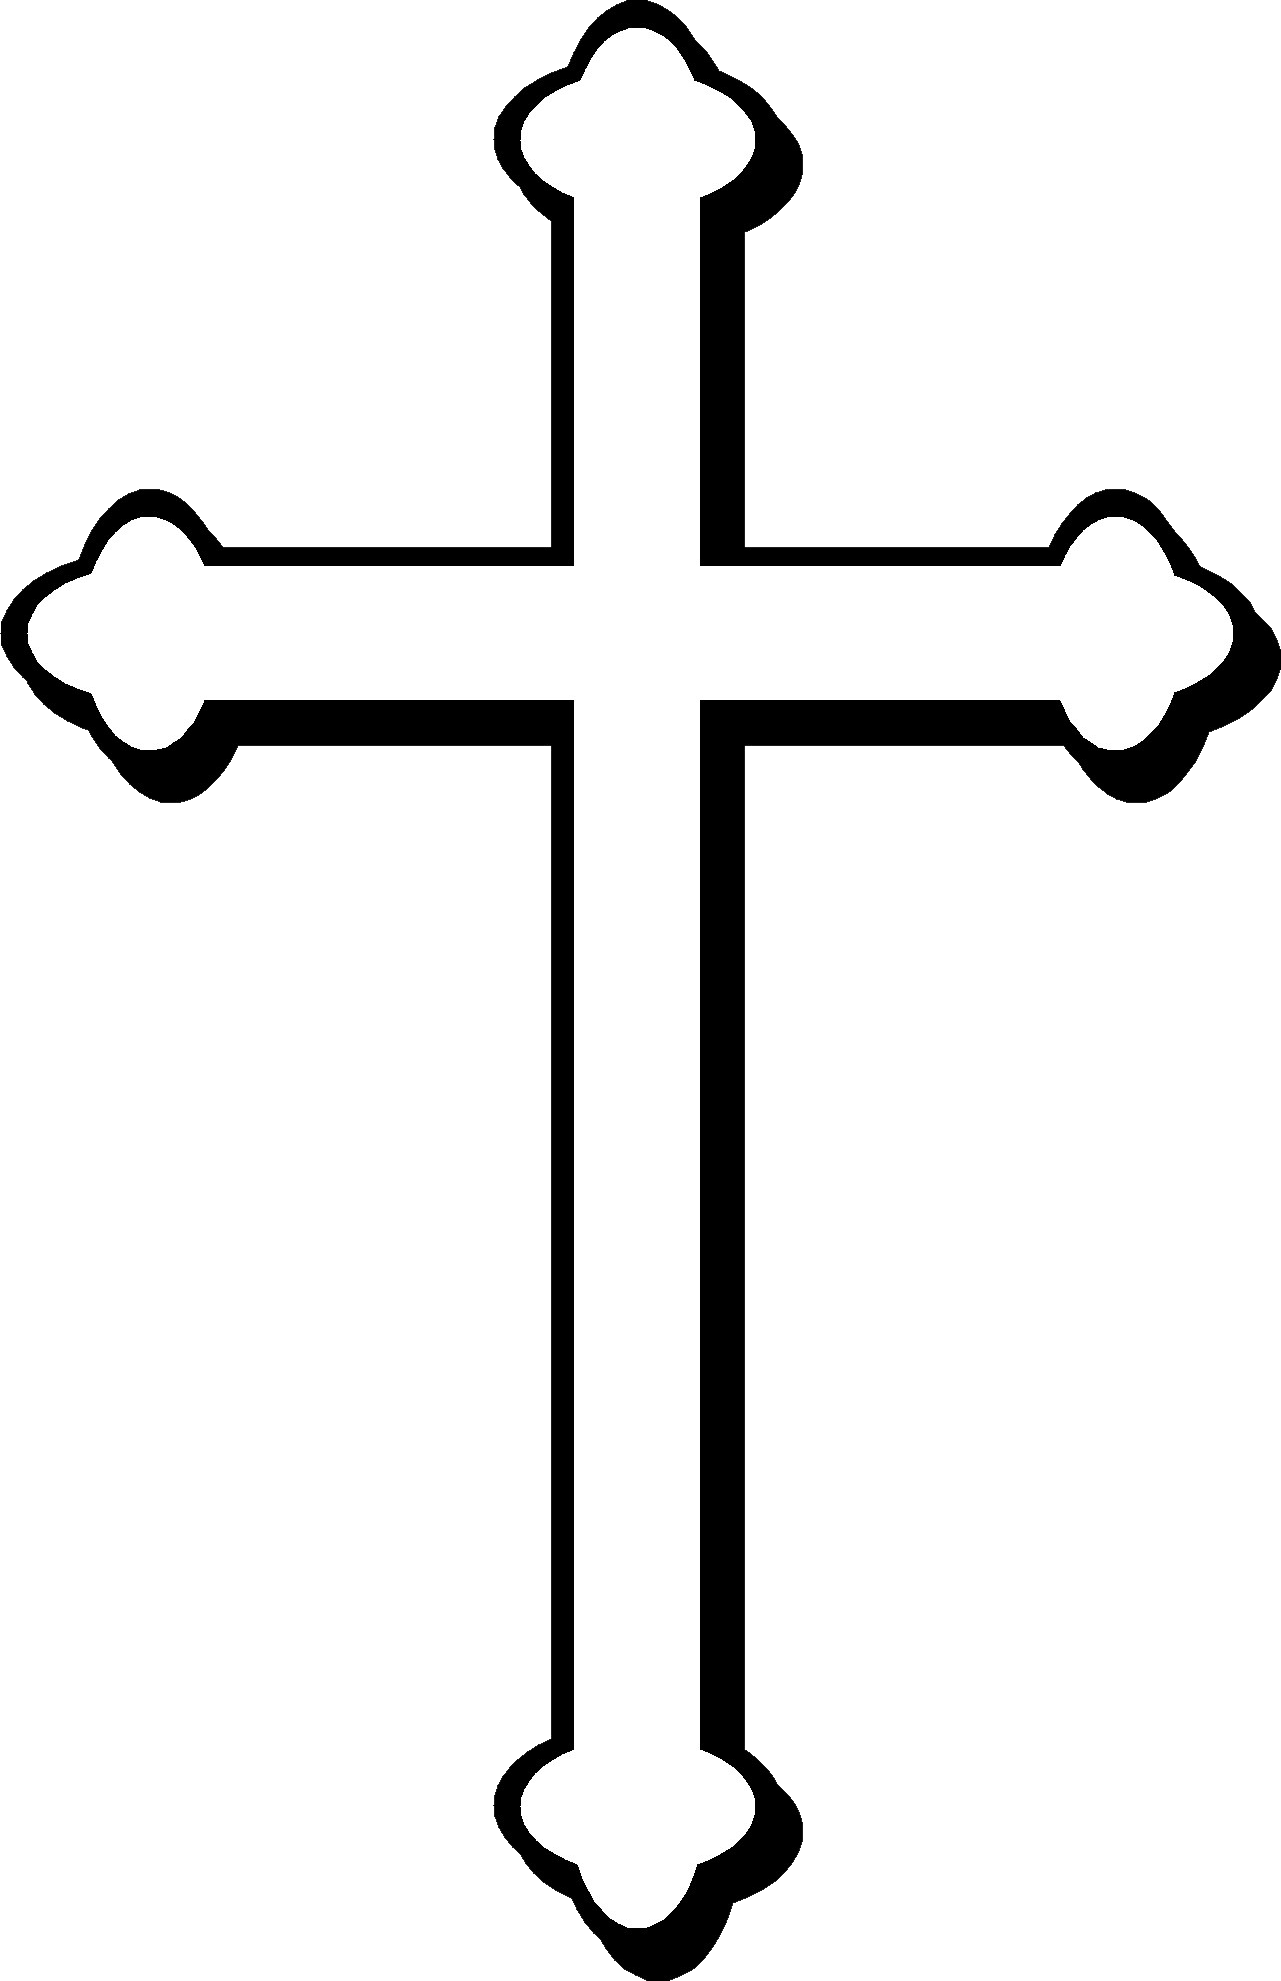 clip transparent stock Christian images free download. Cross clipart black and white png